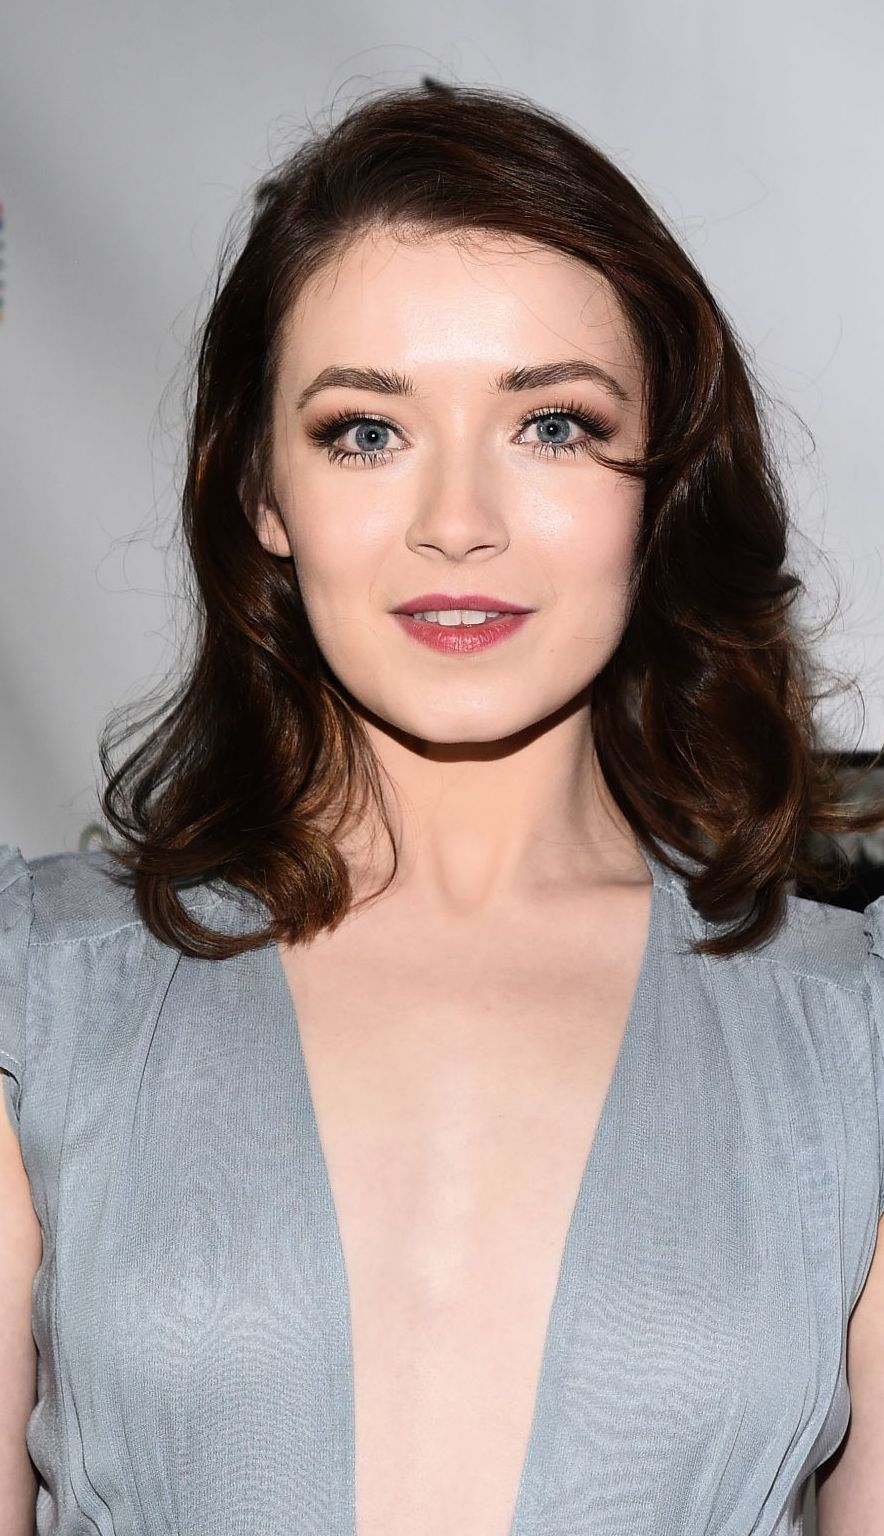 Boobs Photos Sarah Bolger naked photo 2017